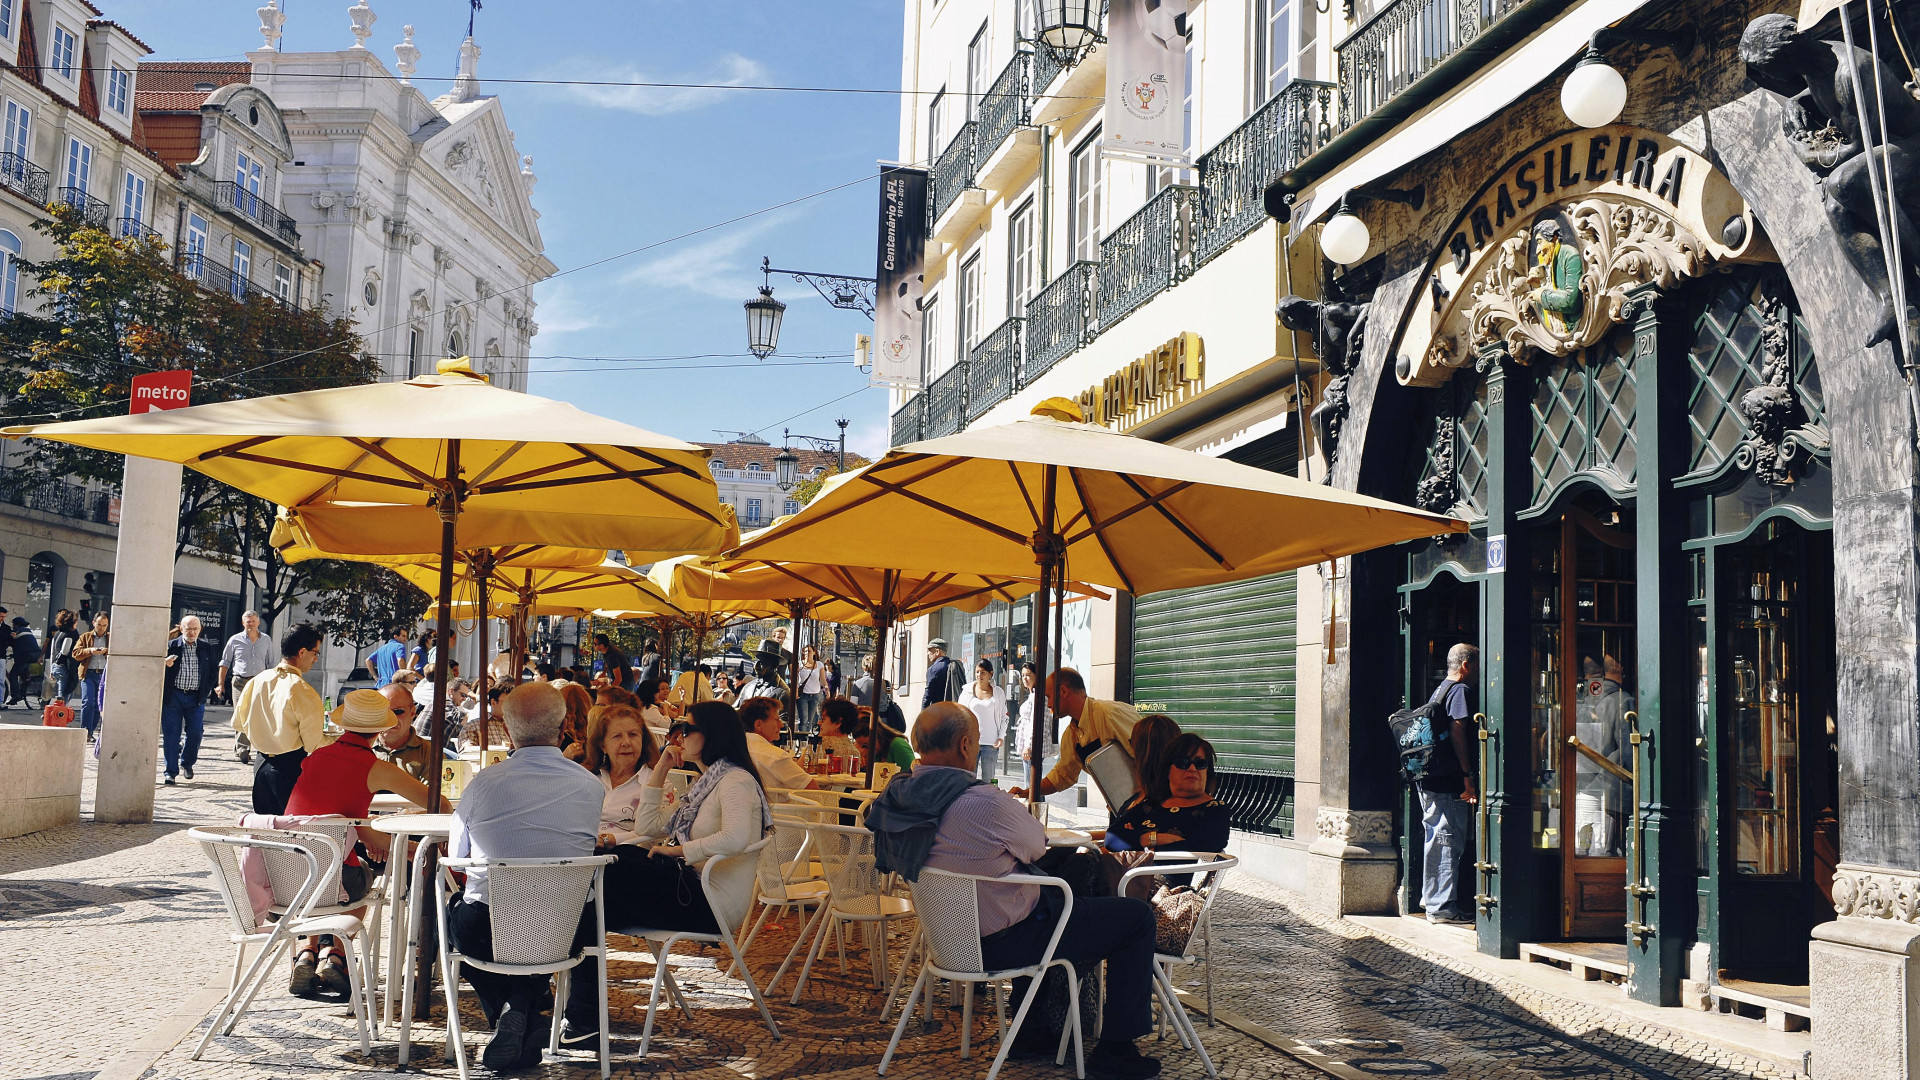 People eating al fresco in Lisbon's Chiado district